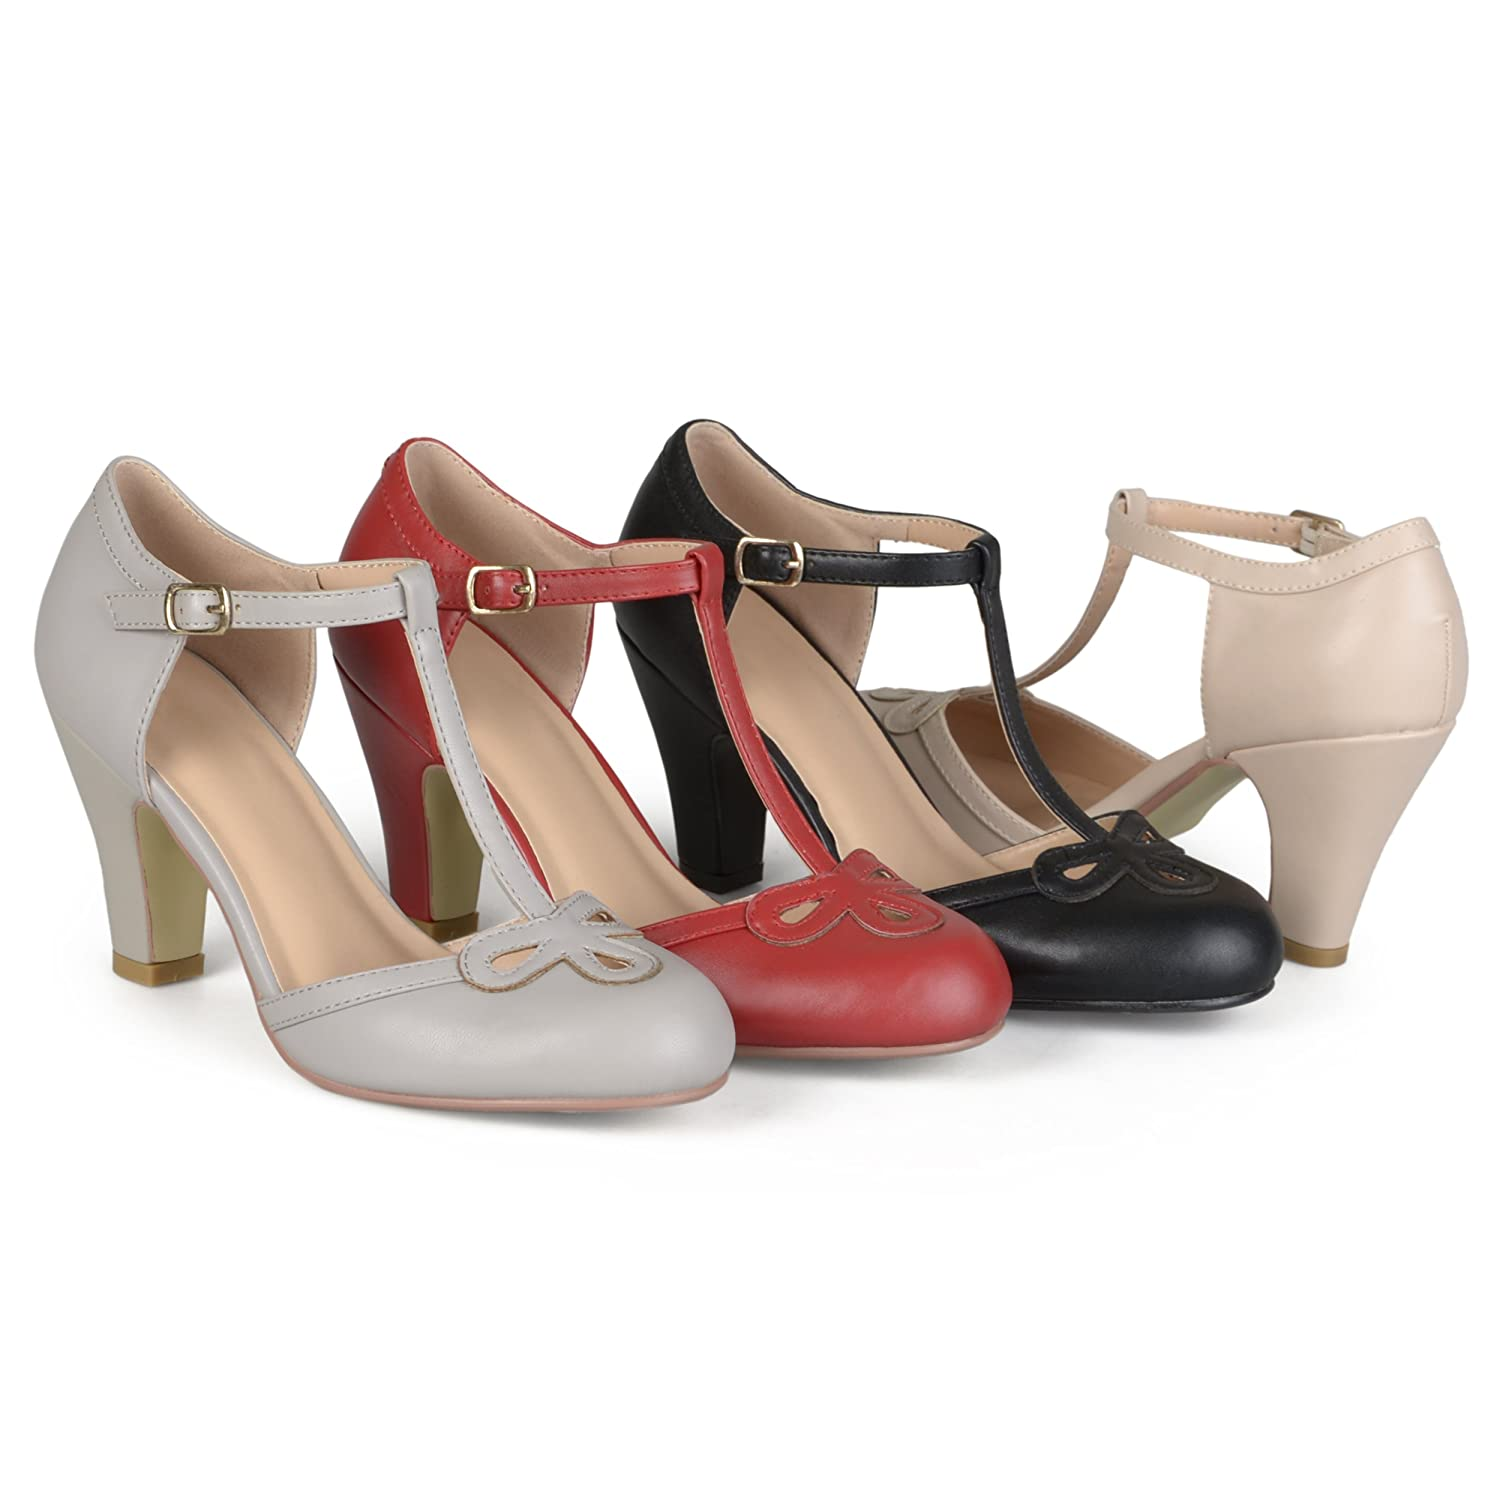 Vintage Heels, Retro Heels, Pumps, Shoes Brinley Co Womens Patsie Pump $35.99 AT vintagedancer.com